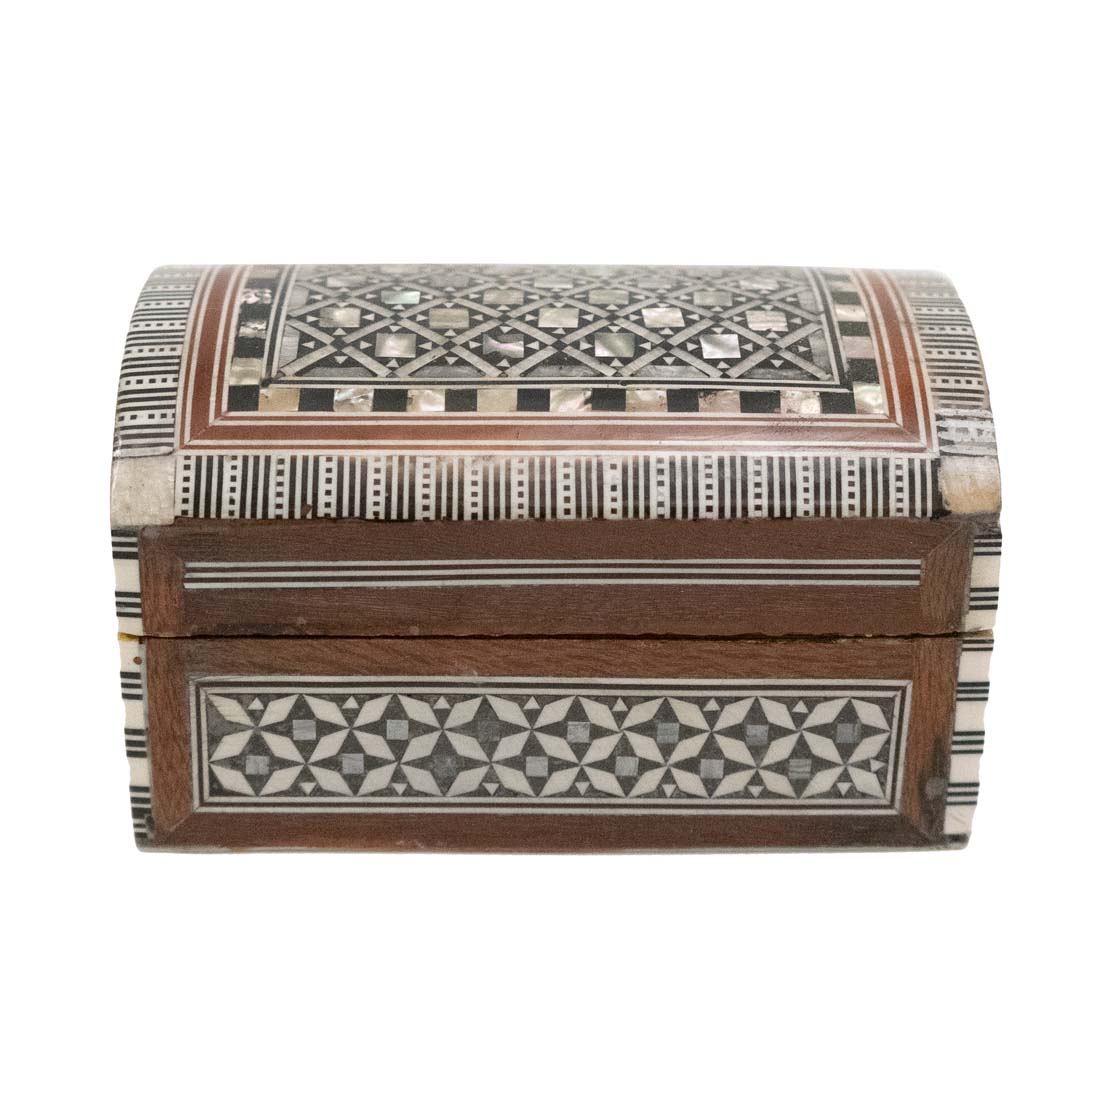 Egyptian Mother of Pearl Box